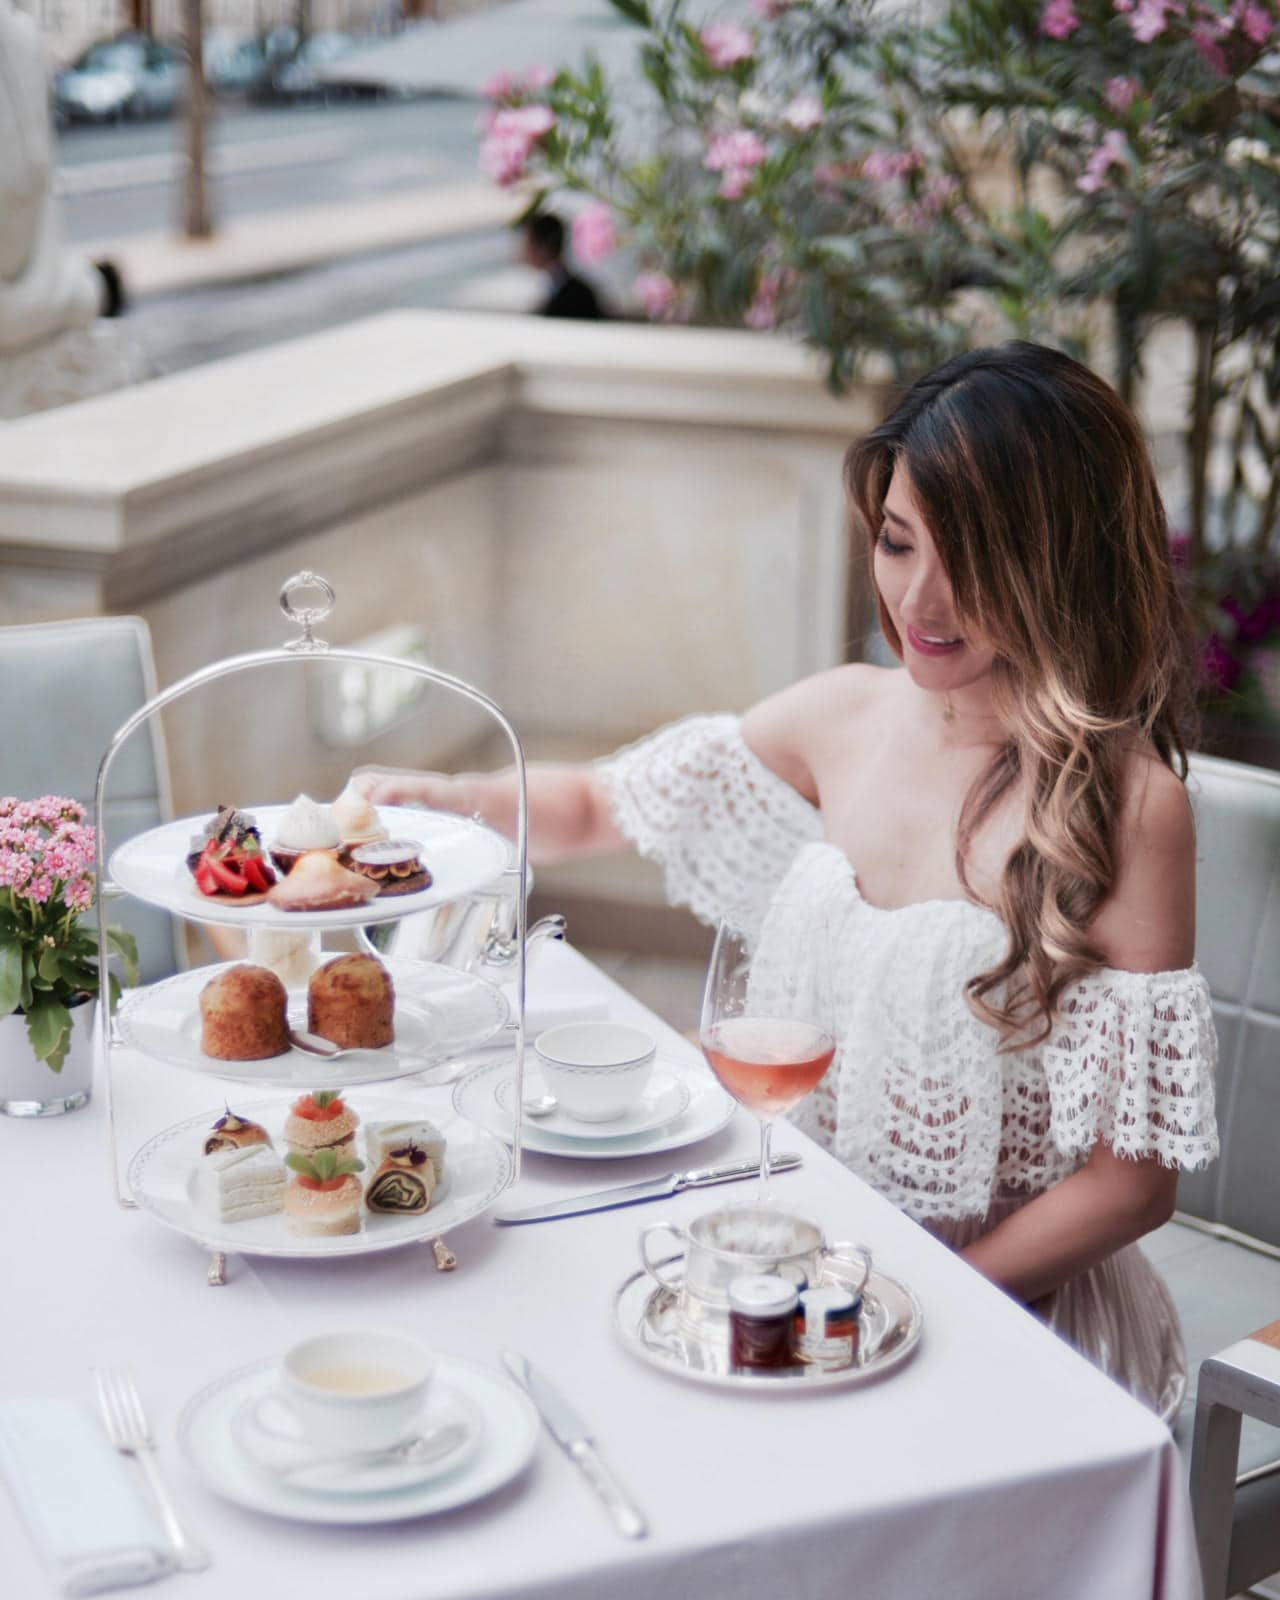 Afternoon Tea at Le Lobby The Peninsula Paris